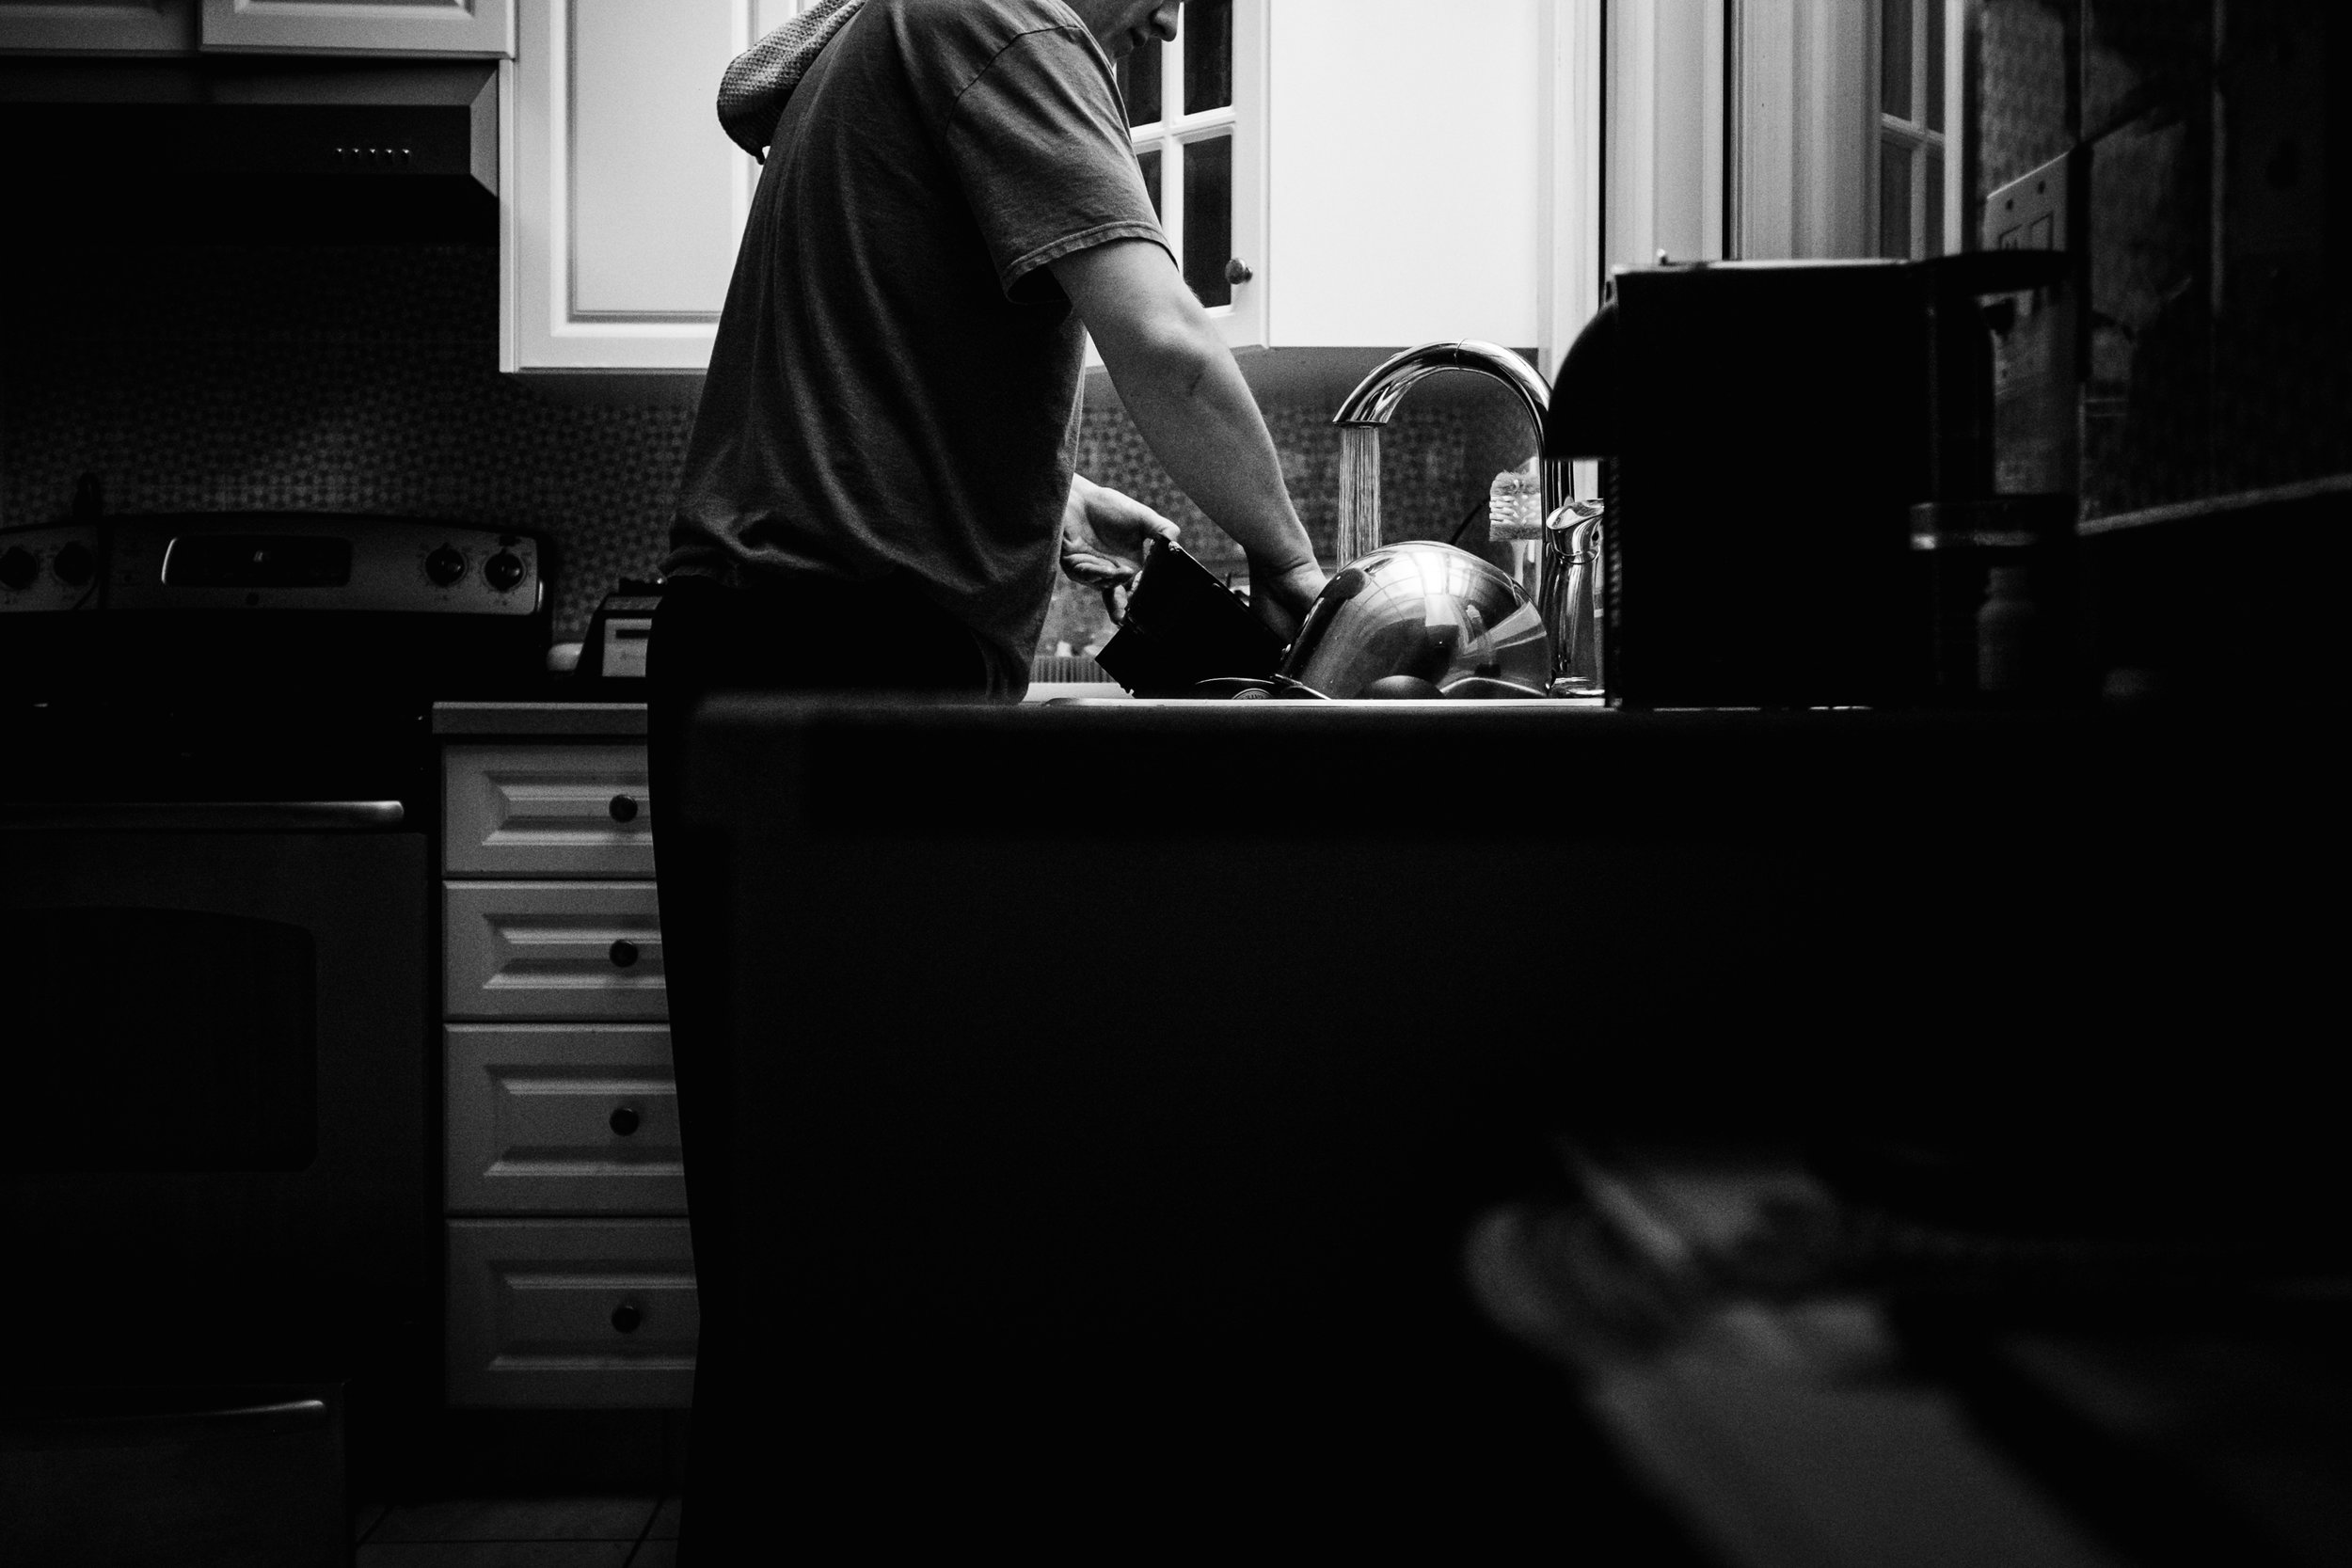 a man washes dishes at the kitchen sink .jpg